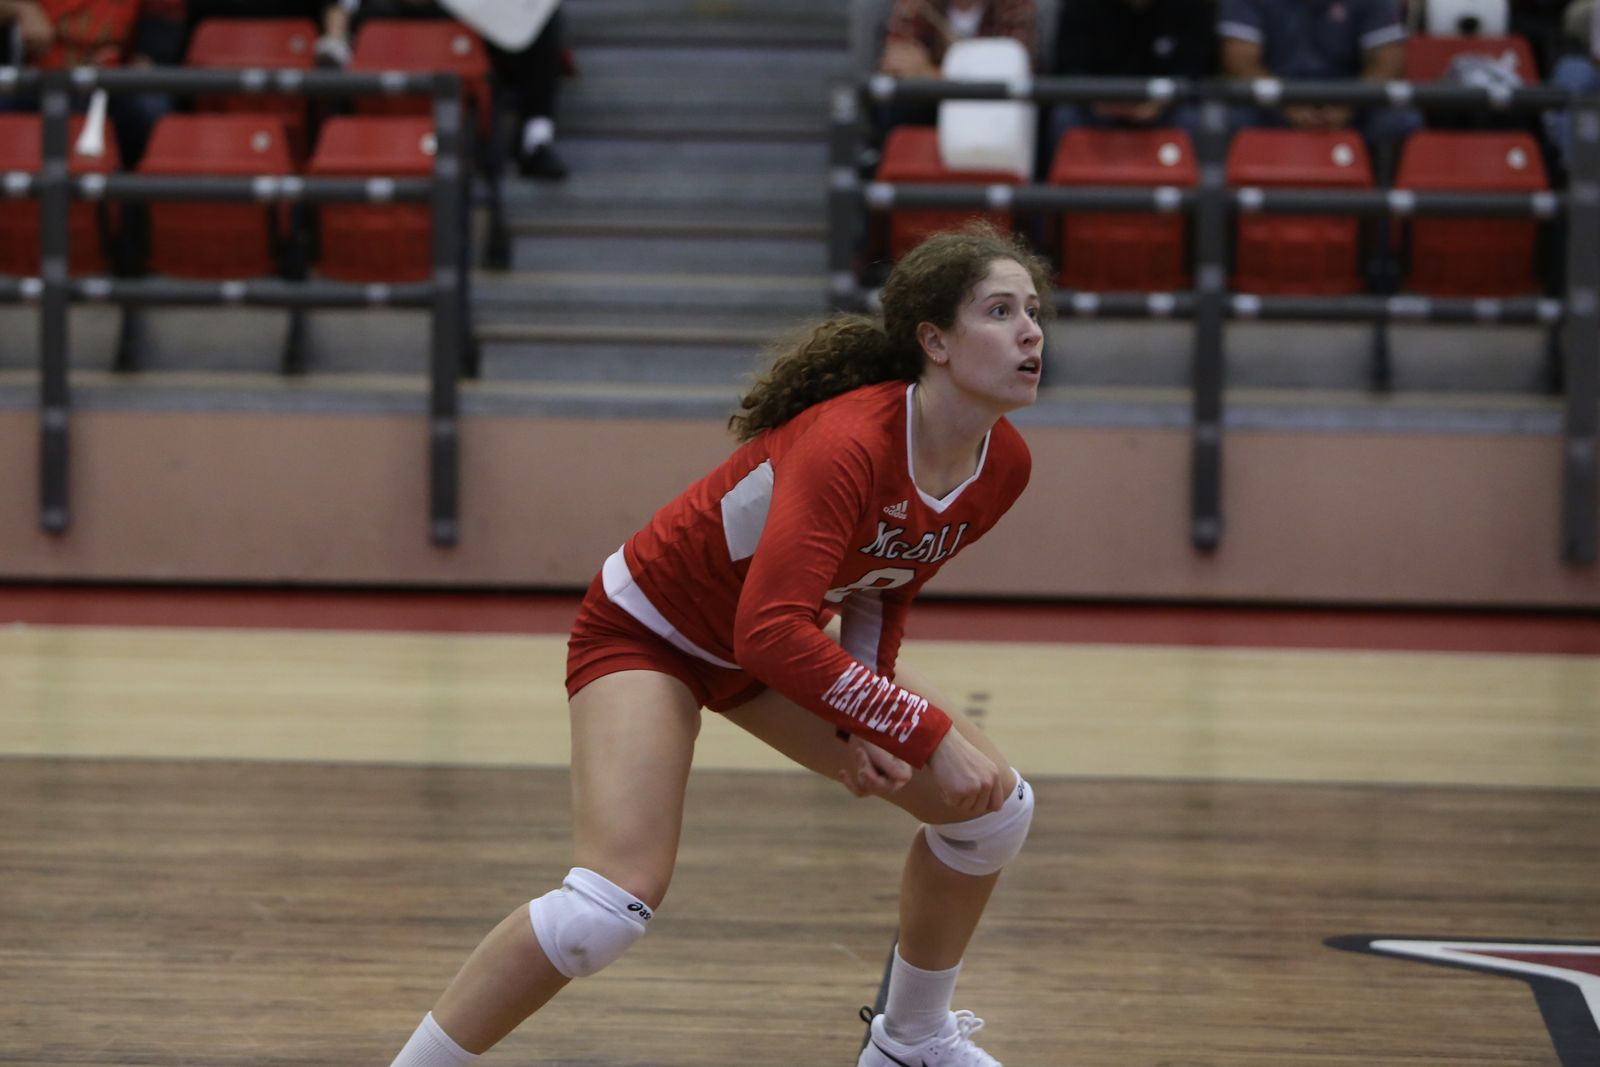 VBALL_w_Fletcher_Rowan_action2_McGill_2019-20.JPG (125 KB)